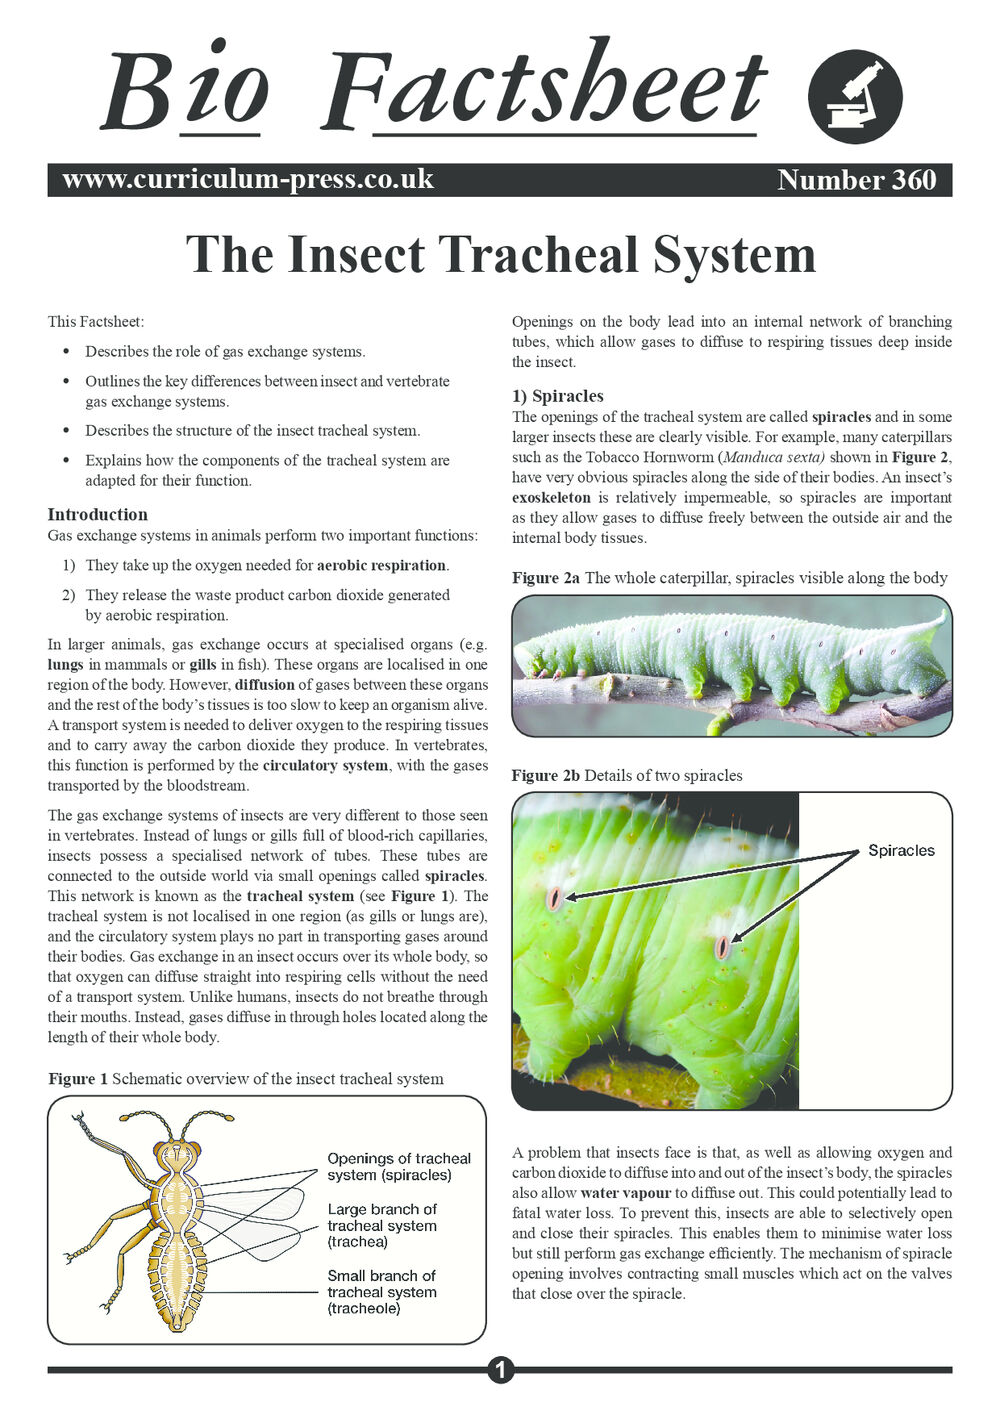 the insect tracheal system